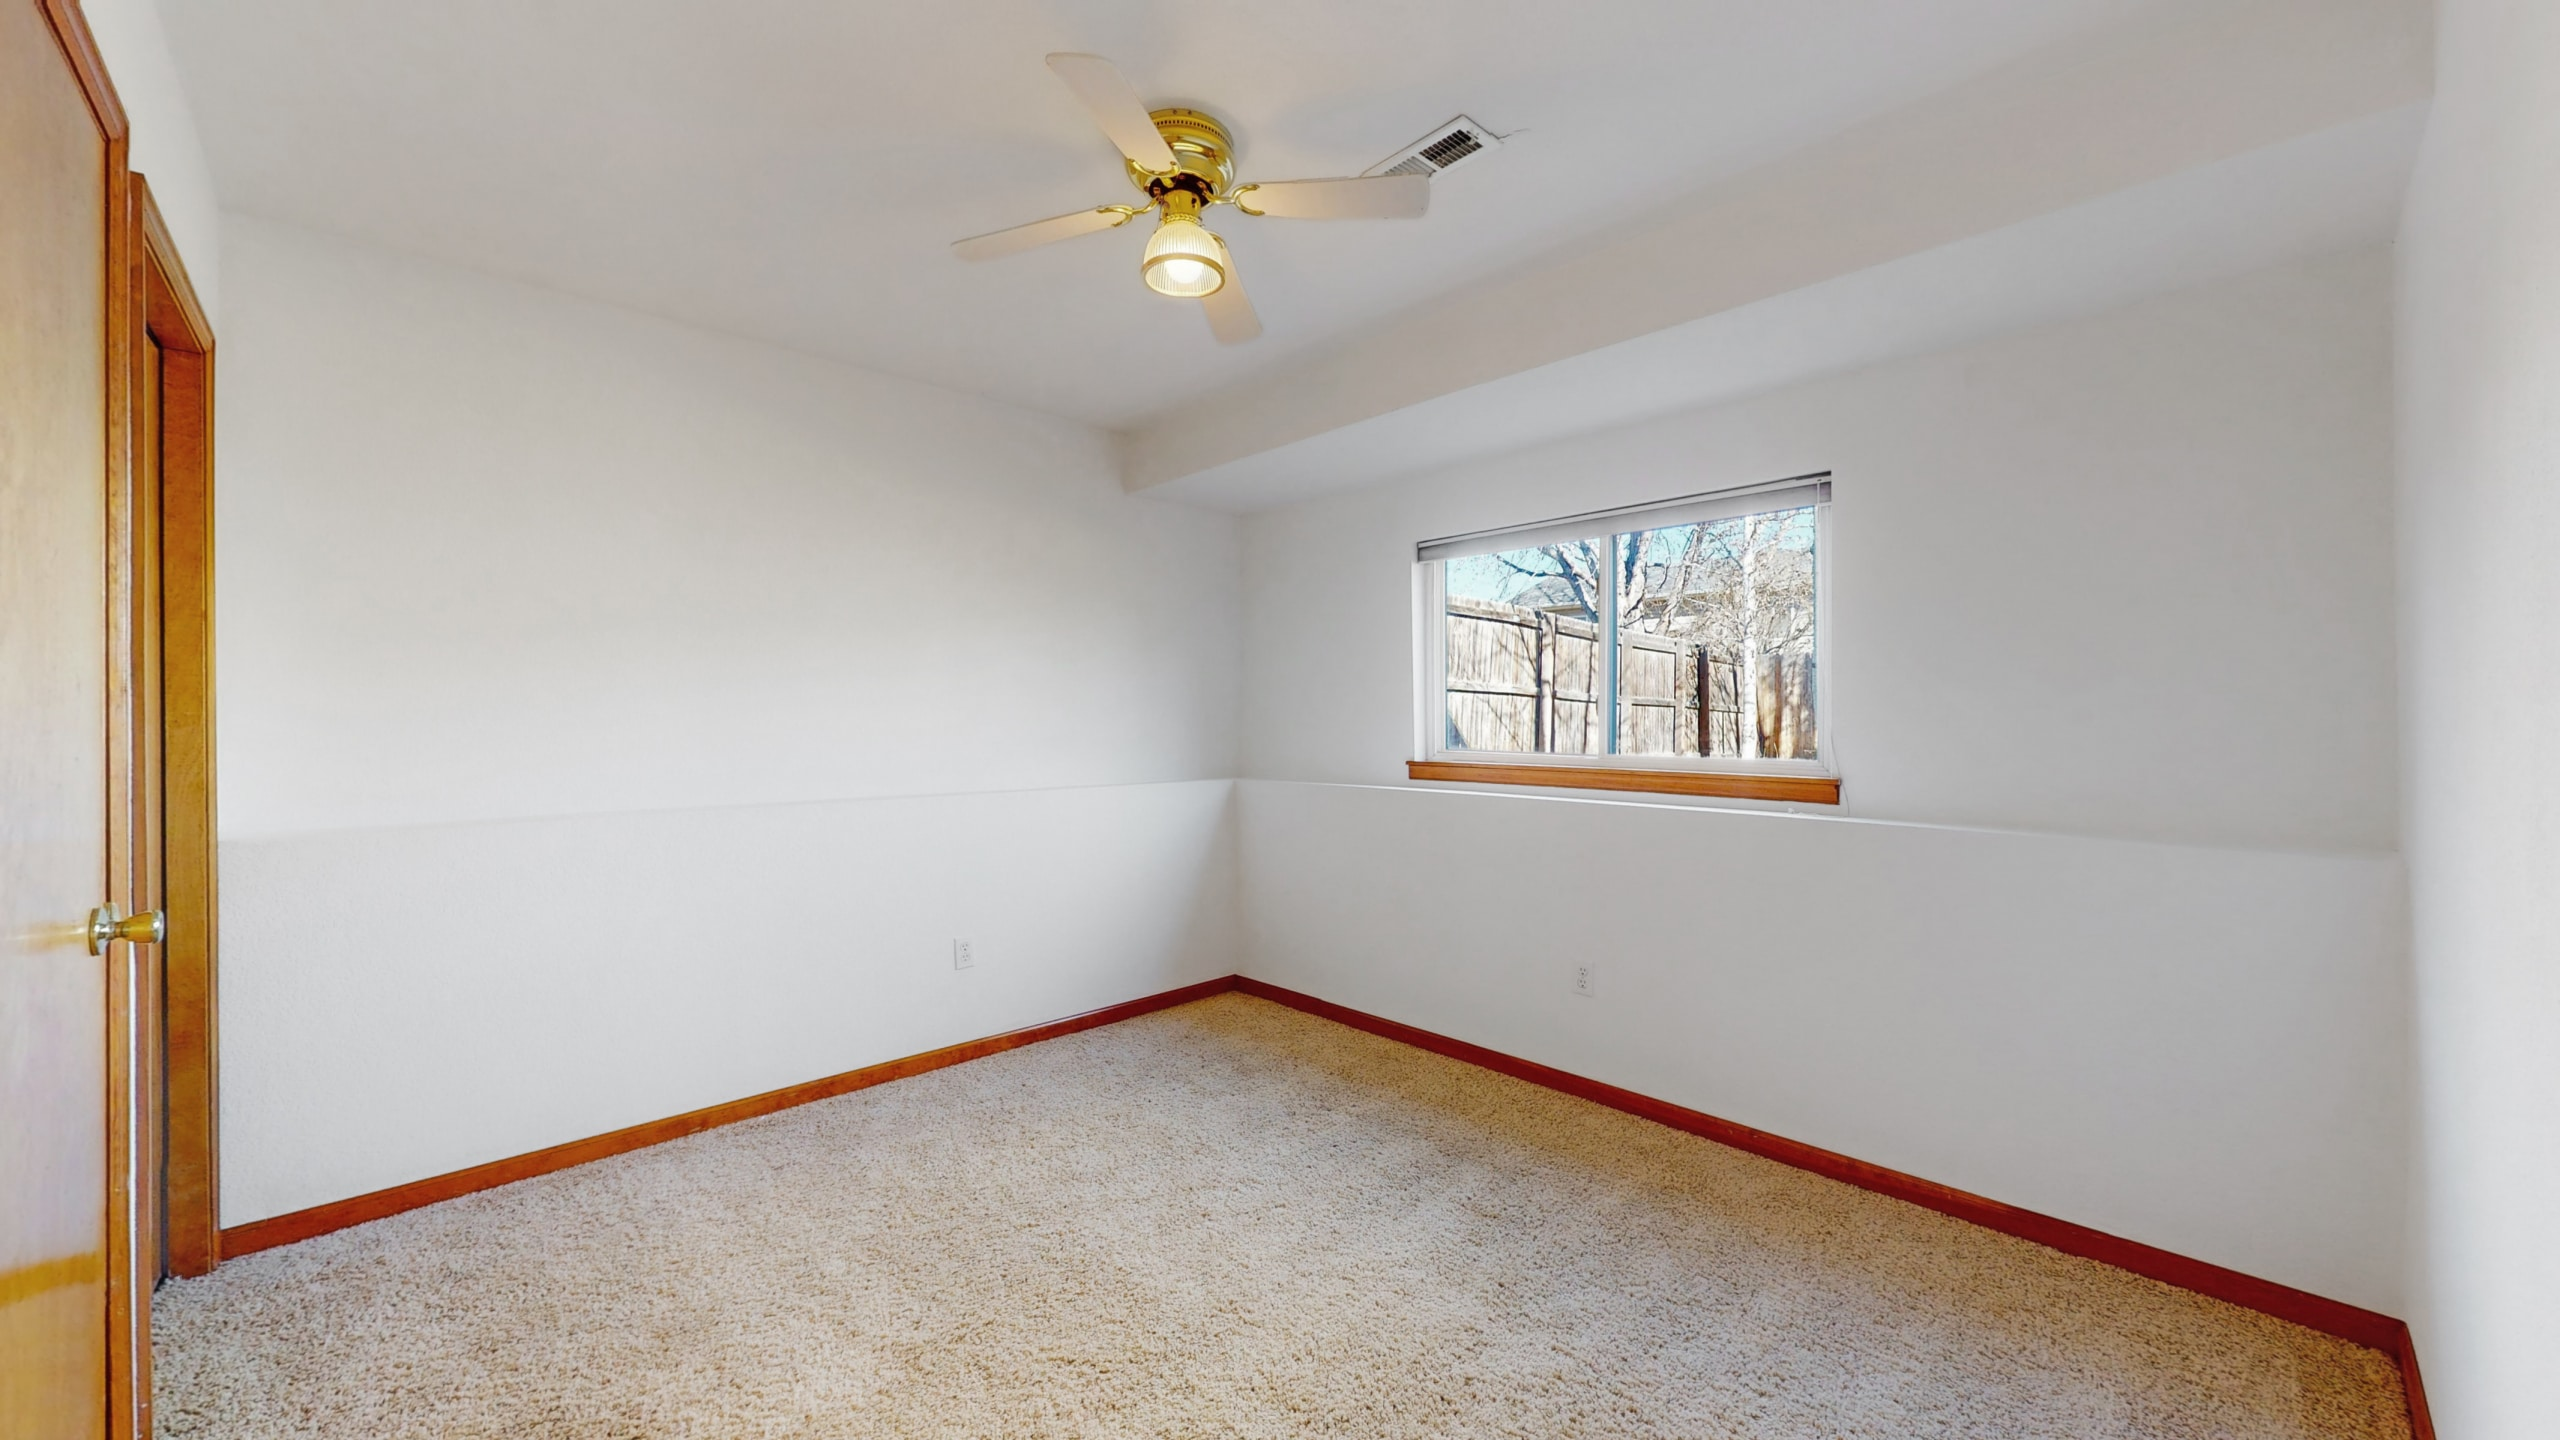 Lower Level Bedroom White Walls with wood trim, natural light